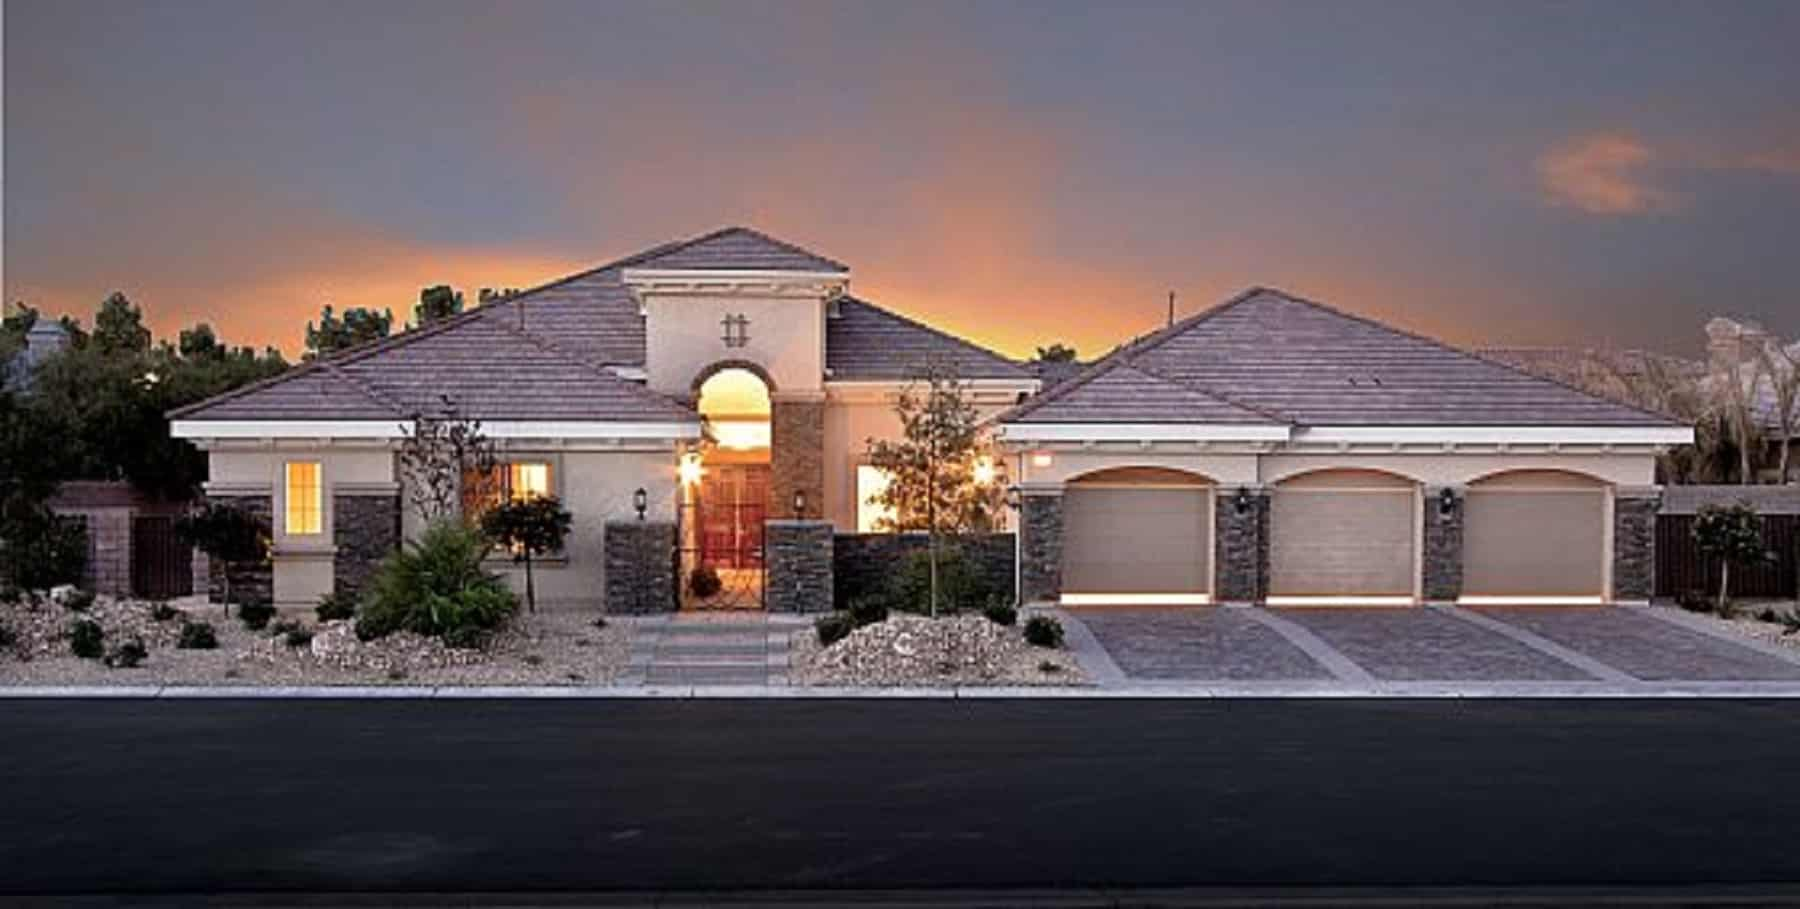 Ranch style homes for sale re max 702 508 8262 - 10 bedroom house for rent in las vegas ...